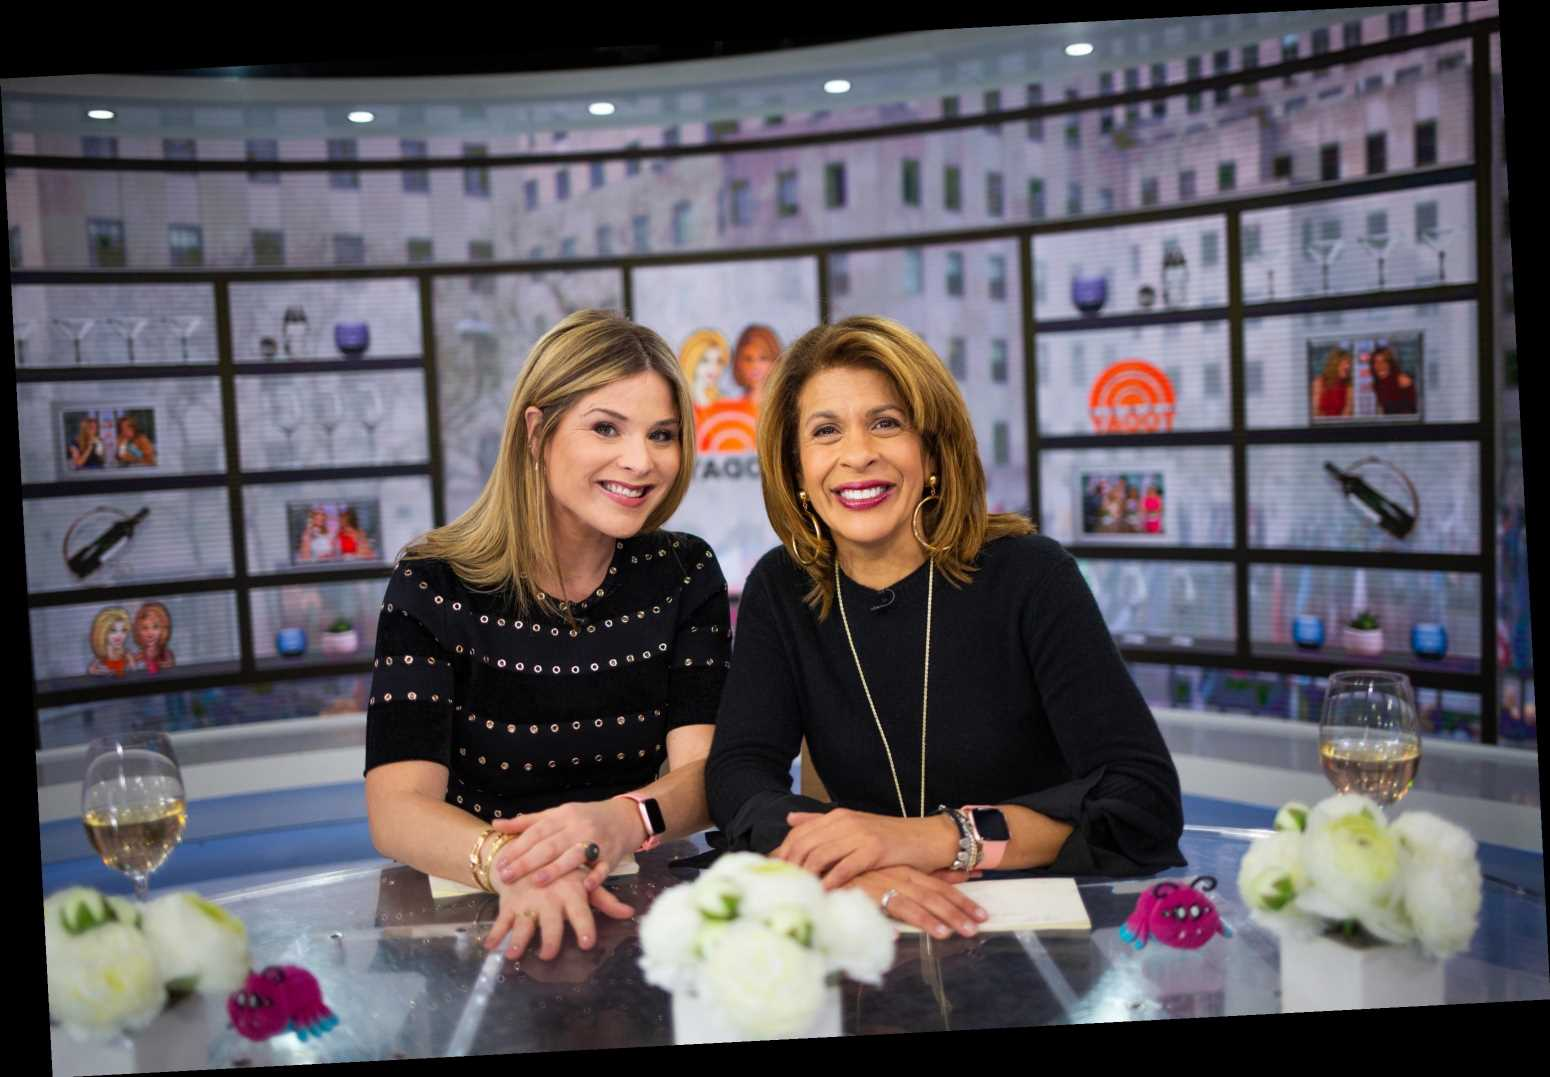 Hoda Kotb and Jenna Bush Hager Start Intermittent Fasting: 'I Was Mad After Our Weigh-In'